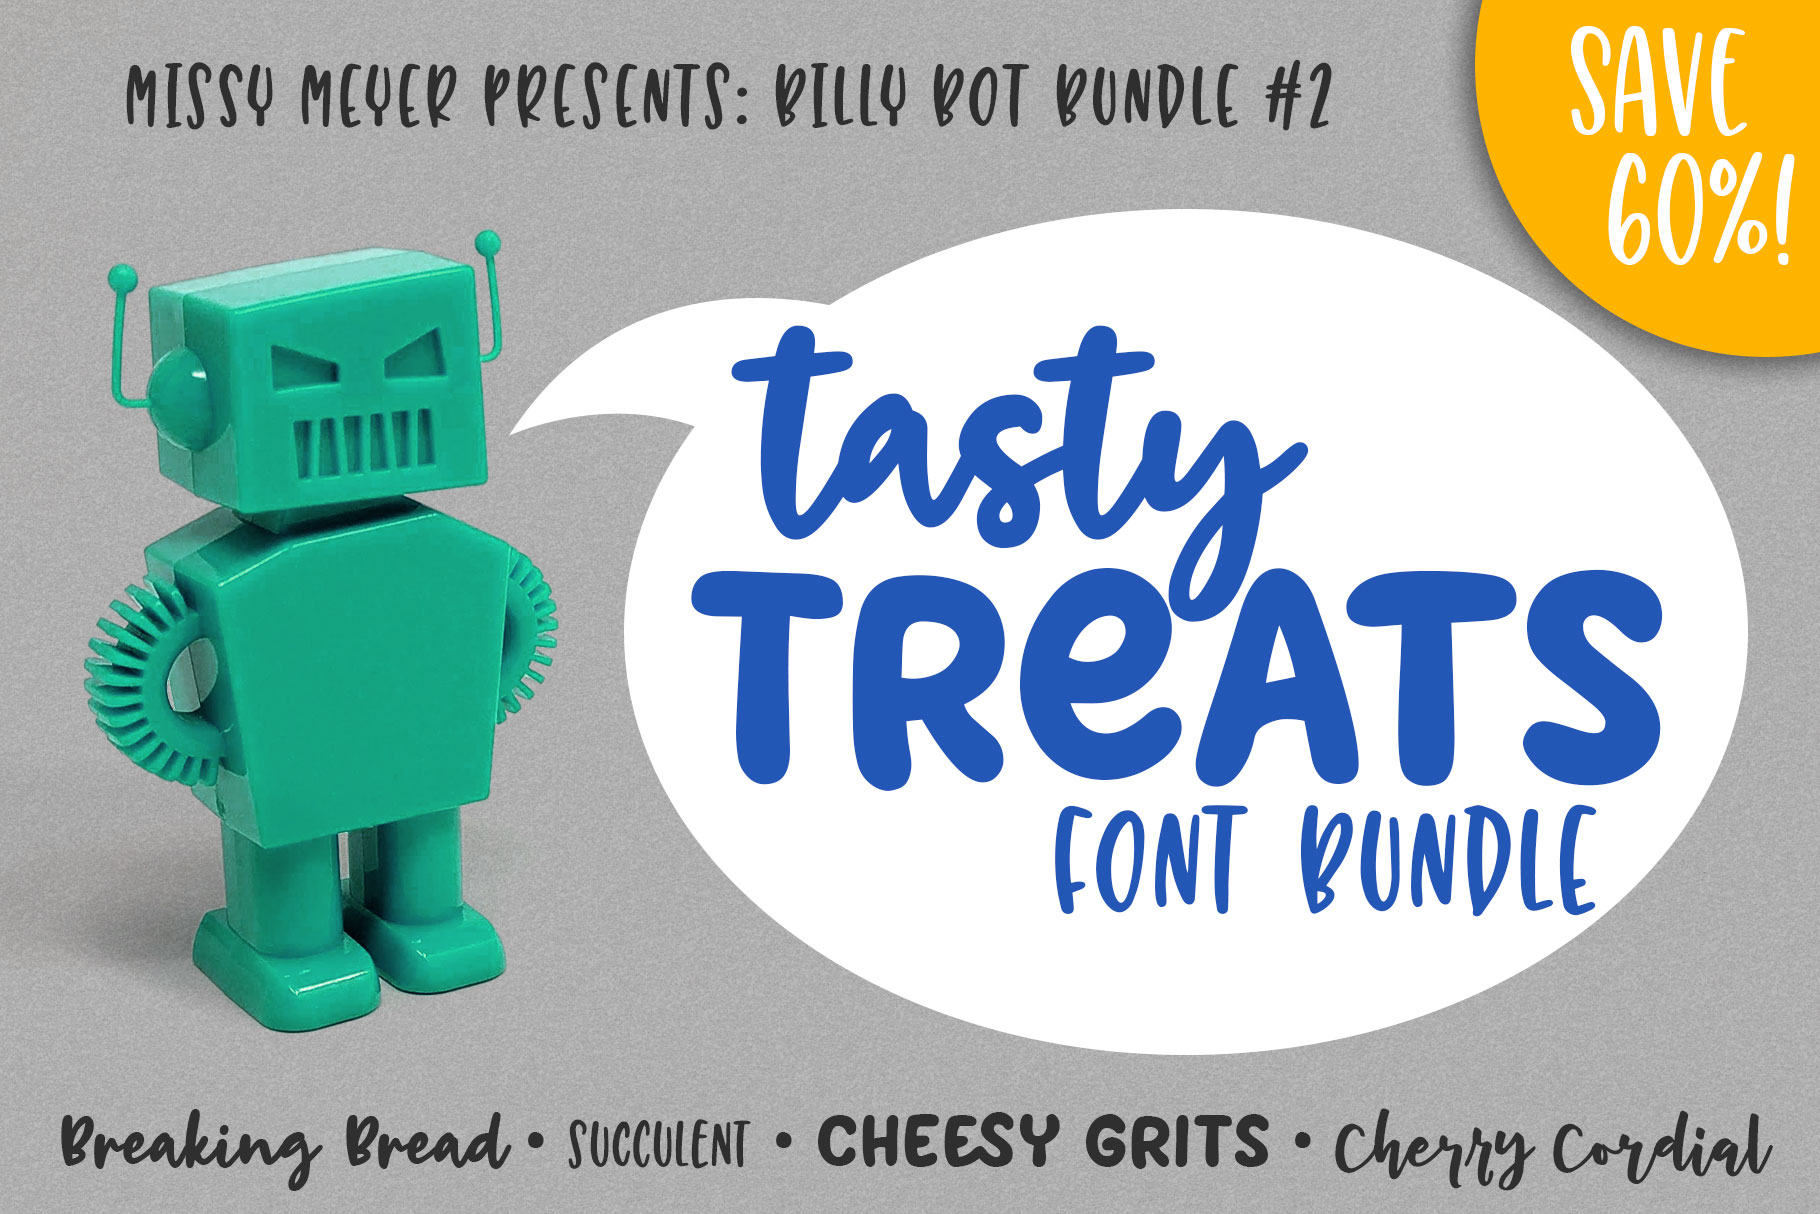 Billy Bot Bundle 2 - Tasty Treats Font Bundle! example image 1